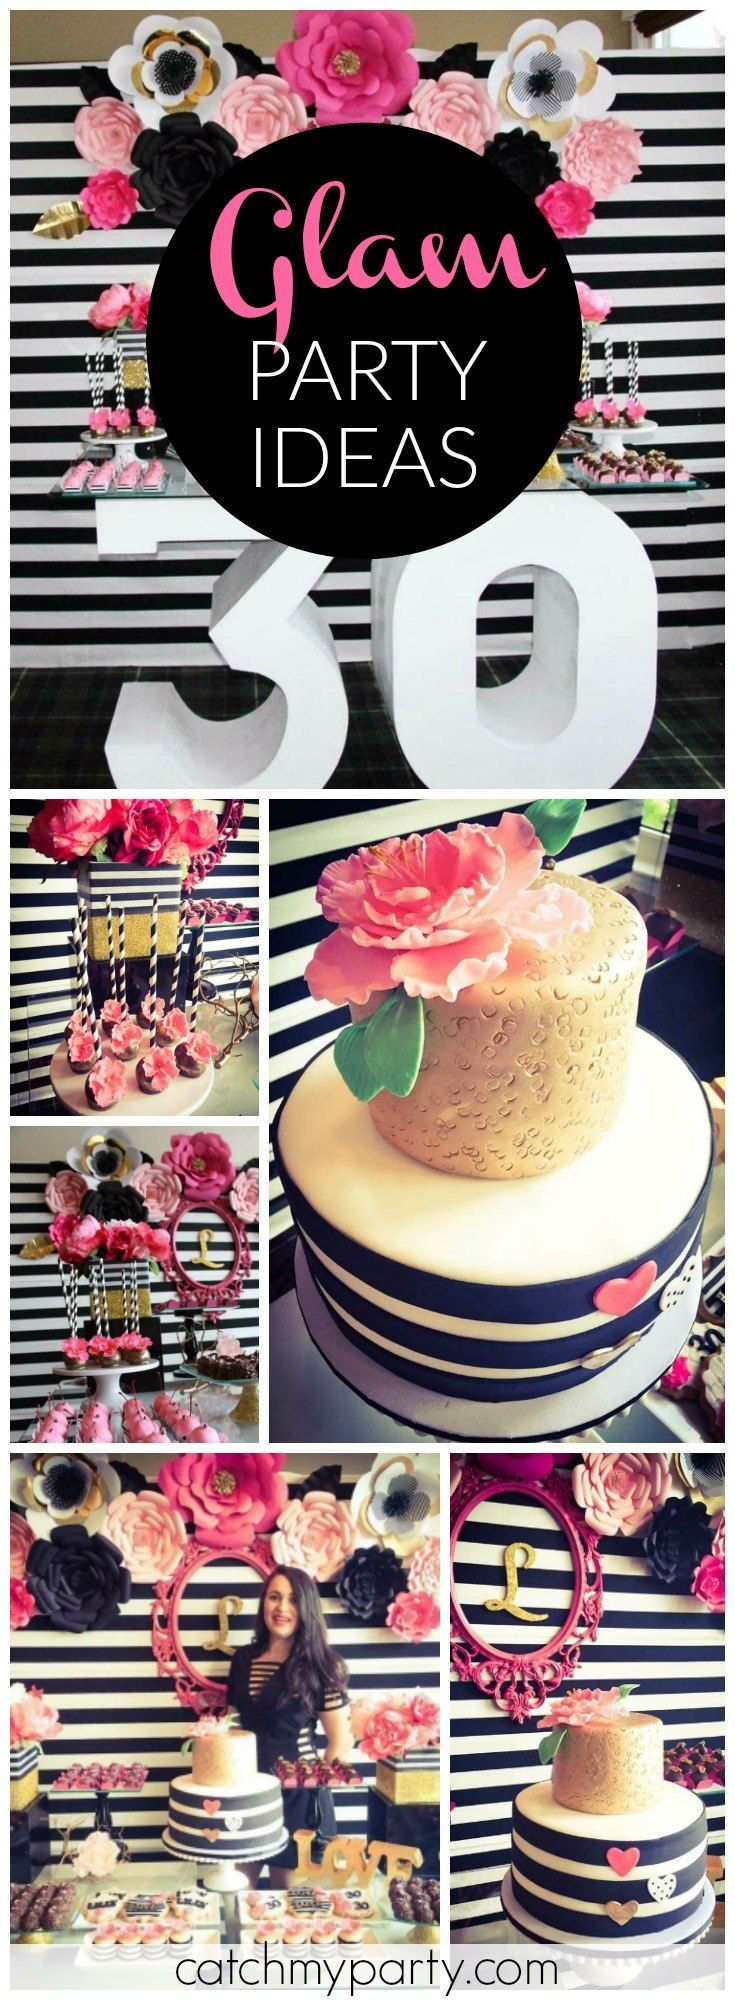 Wow! Love this Kate Spade inspired glam 30th birthday in black, white and pink! See more party ideas at Catchmyparty.com!